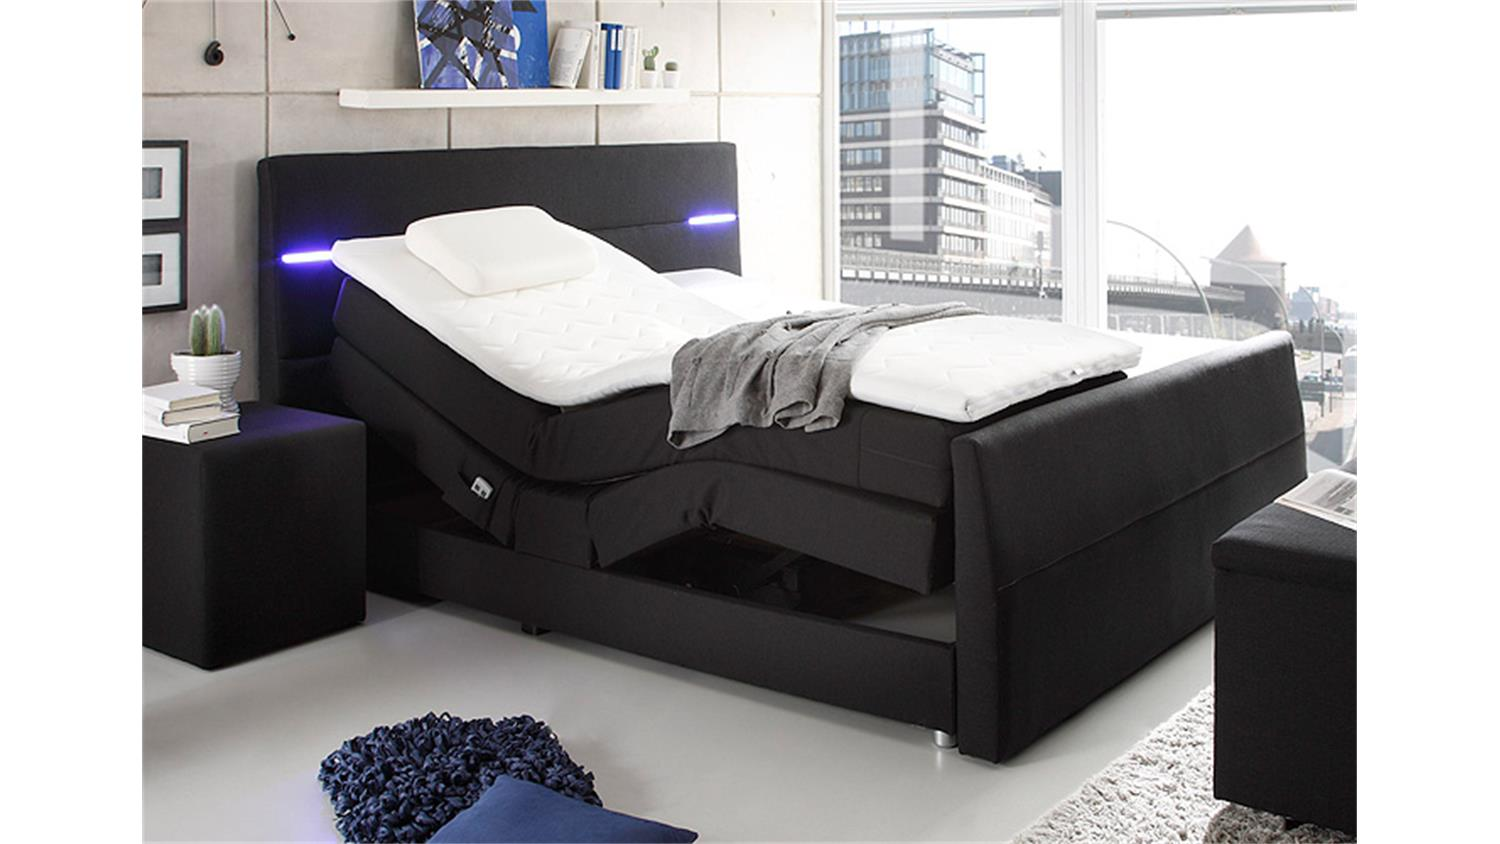 test boxspringbett ikea boxspringbett test ikea haus. Black Bedroom Furniture Sets. Home Design Ideas